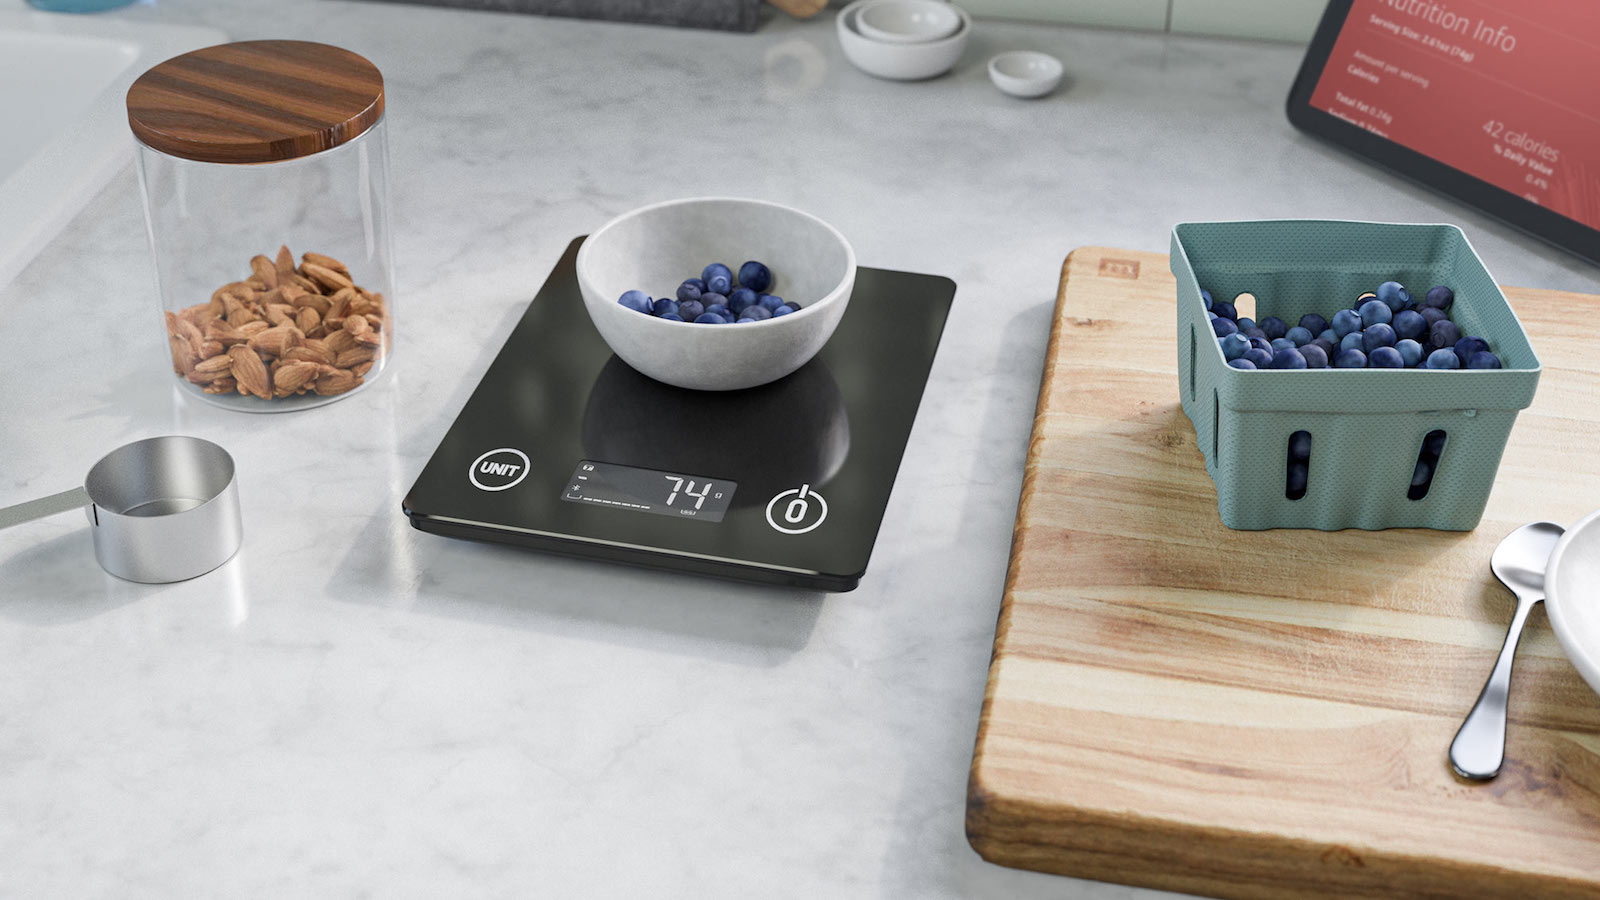 Amazon Smart Nutrition Scale shares the calories, carbs, or sugar content of food